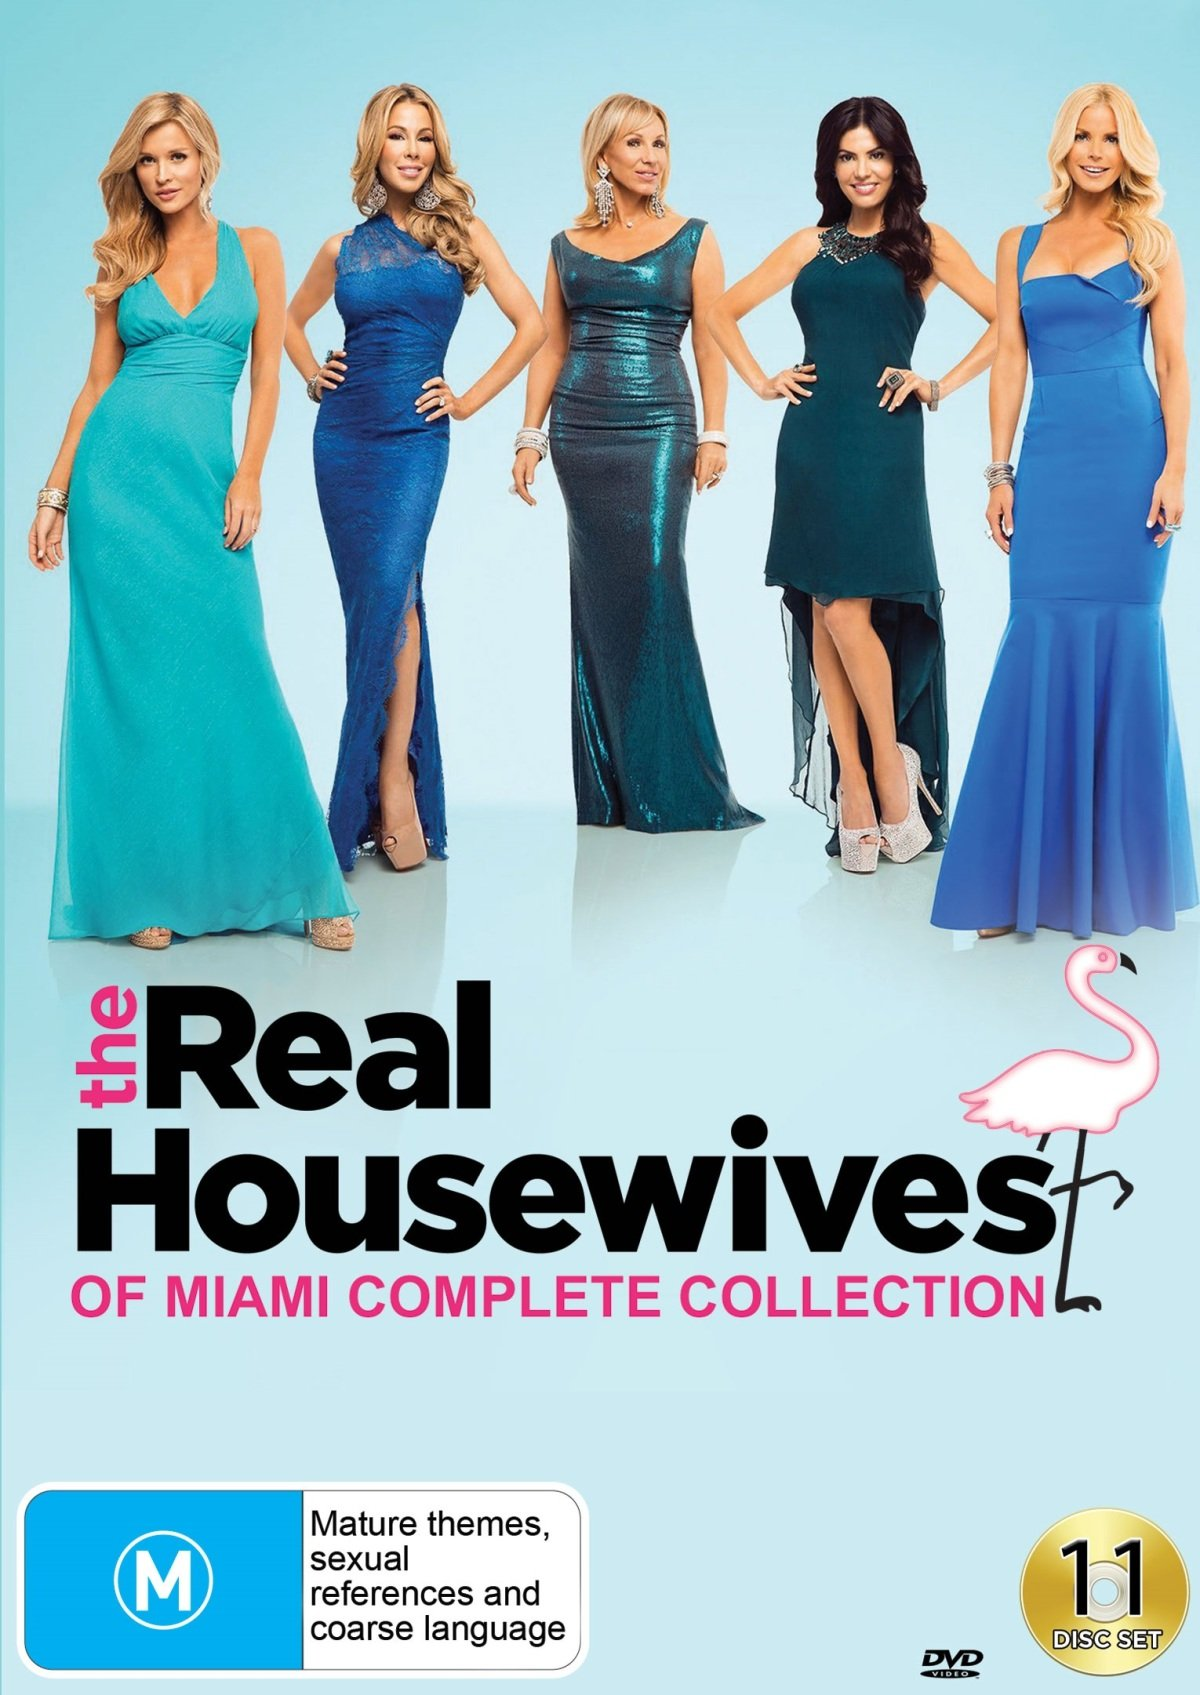 Real Housewives Of Miami: Seasons 1-3